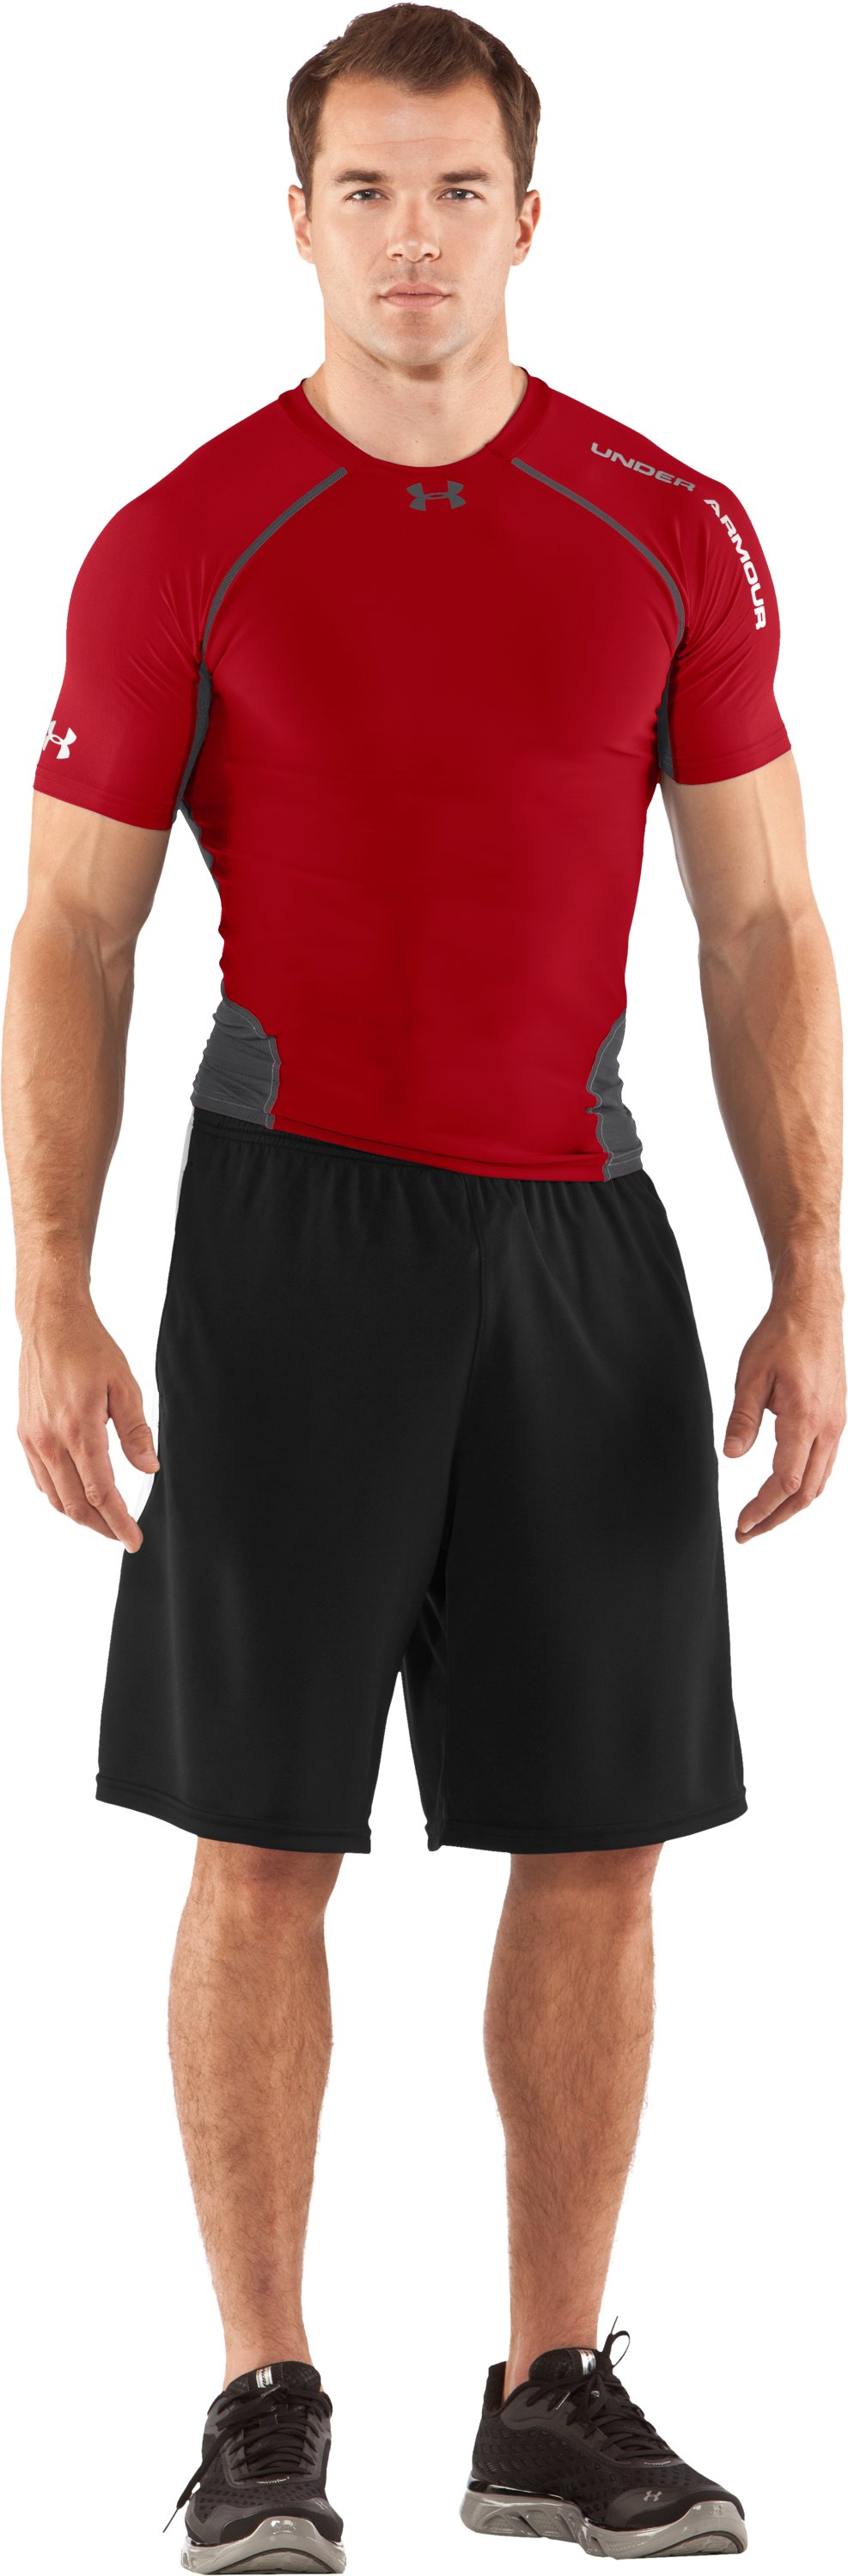 Men's HeatGear® Stretch Woven Short Sleeve, Red, zoomed image